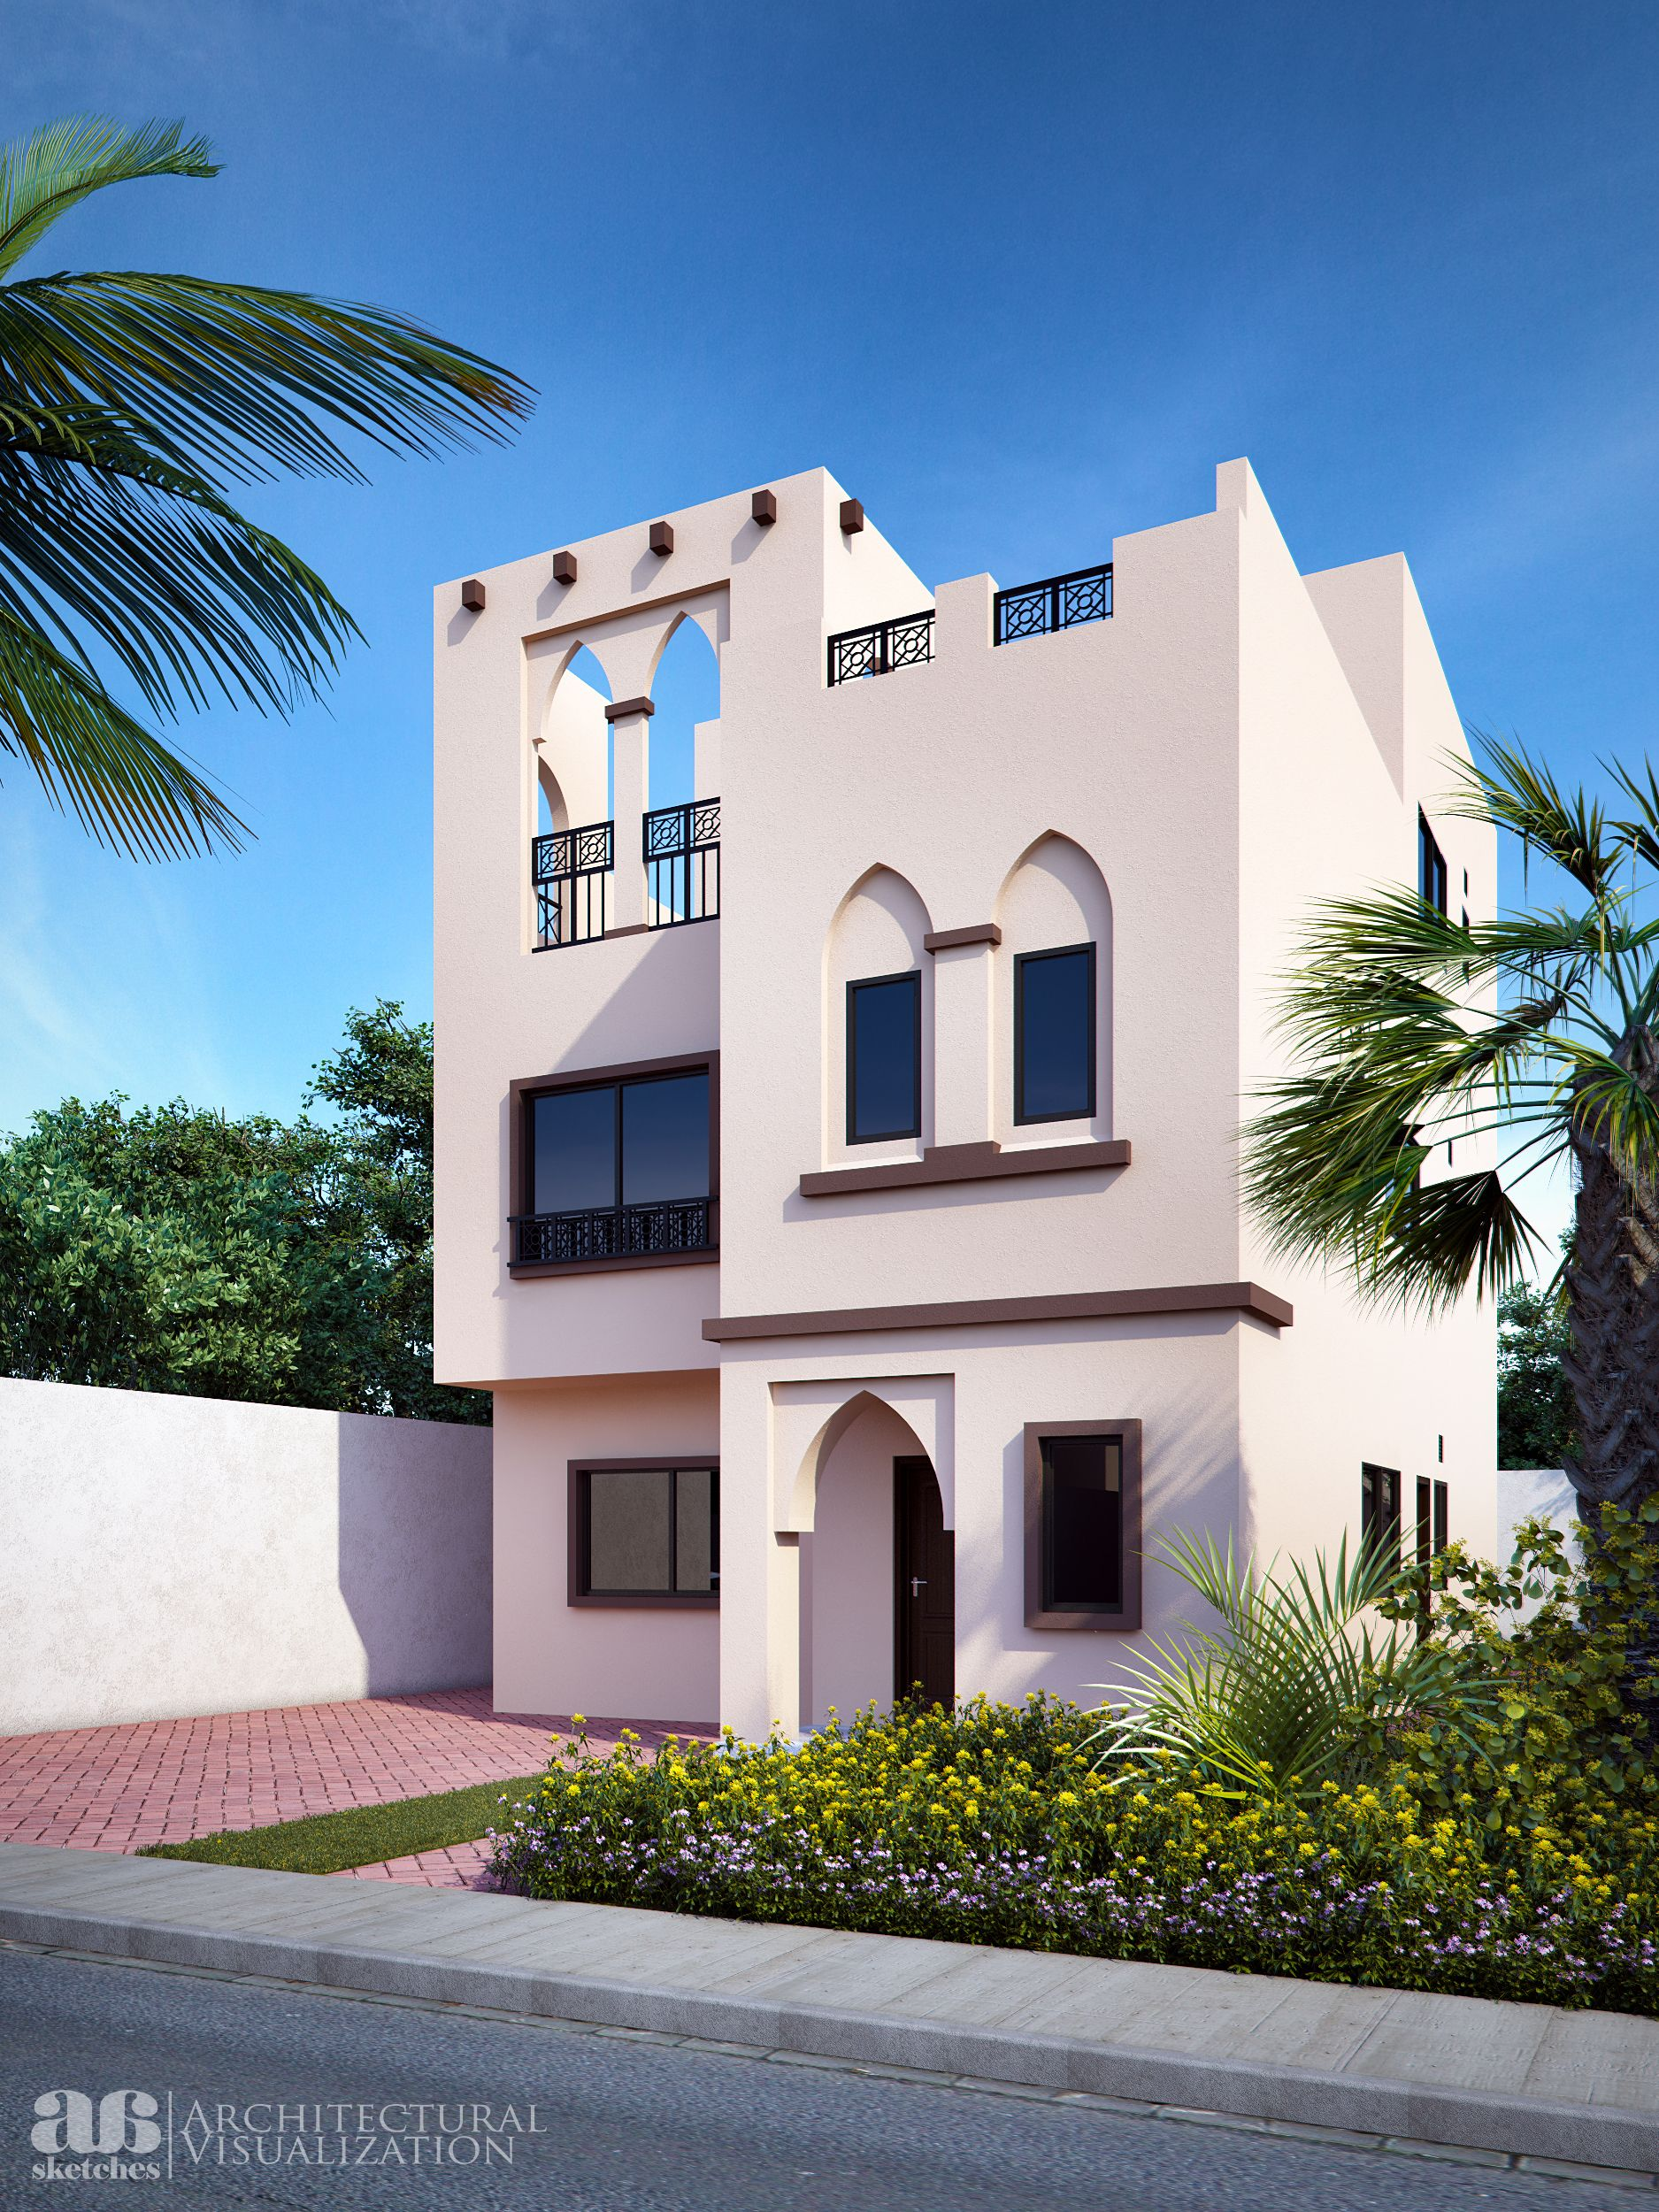 Home interior elevation proposed d photo rendering of arabic style villa  islamic interior